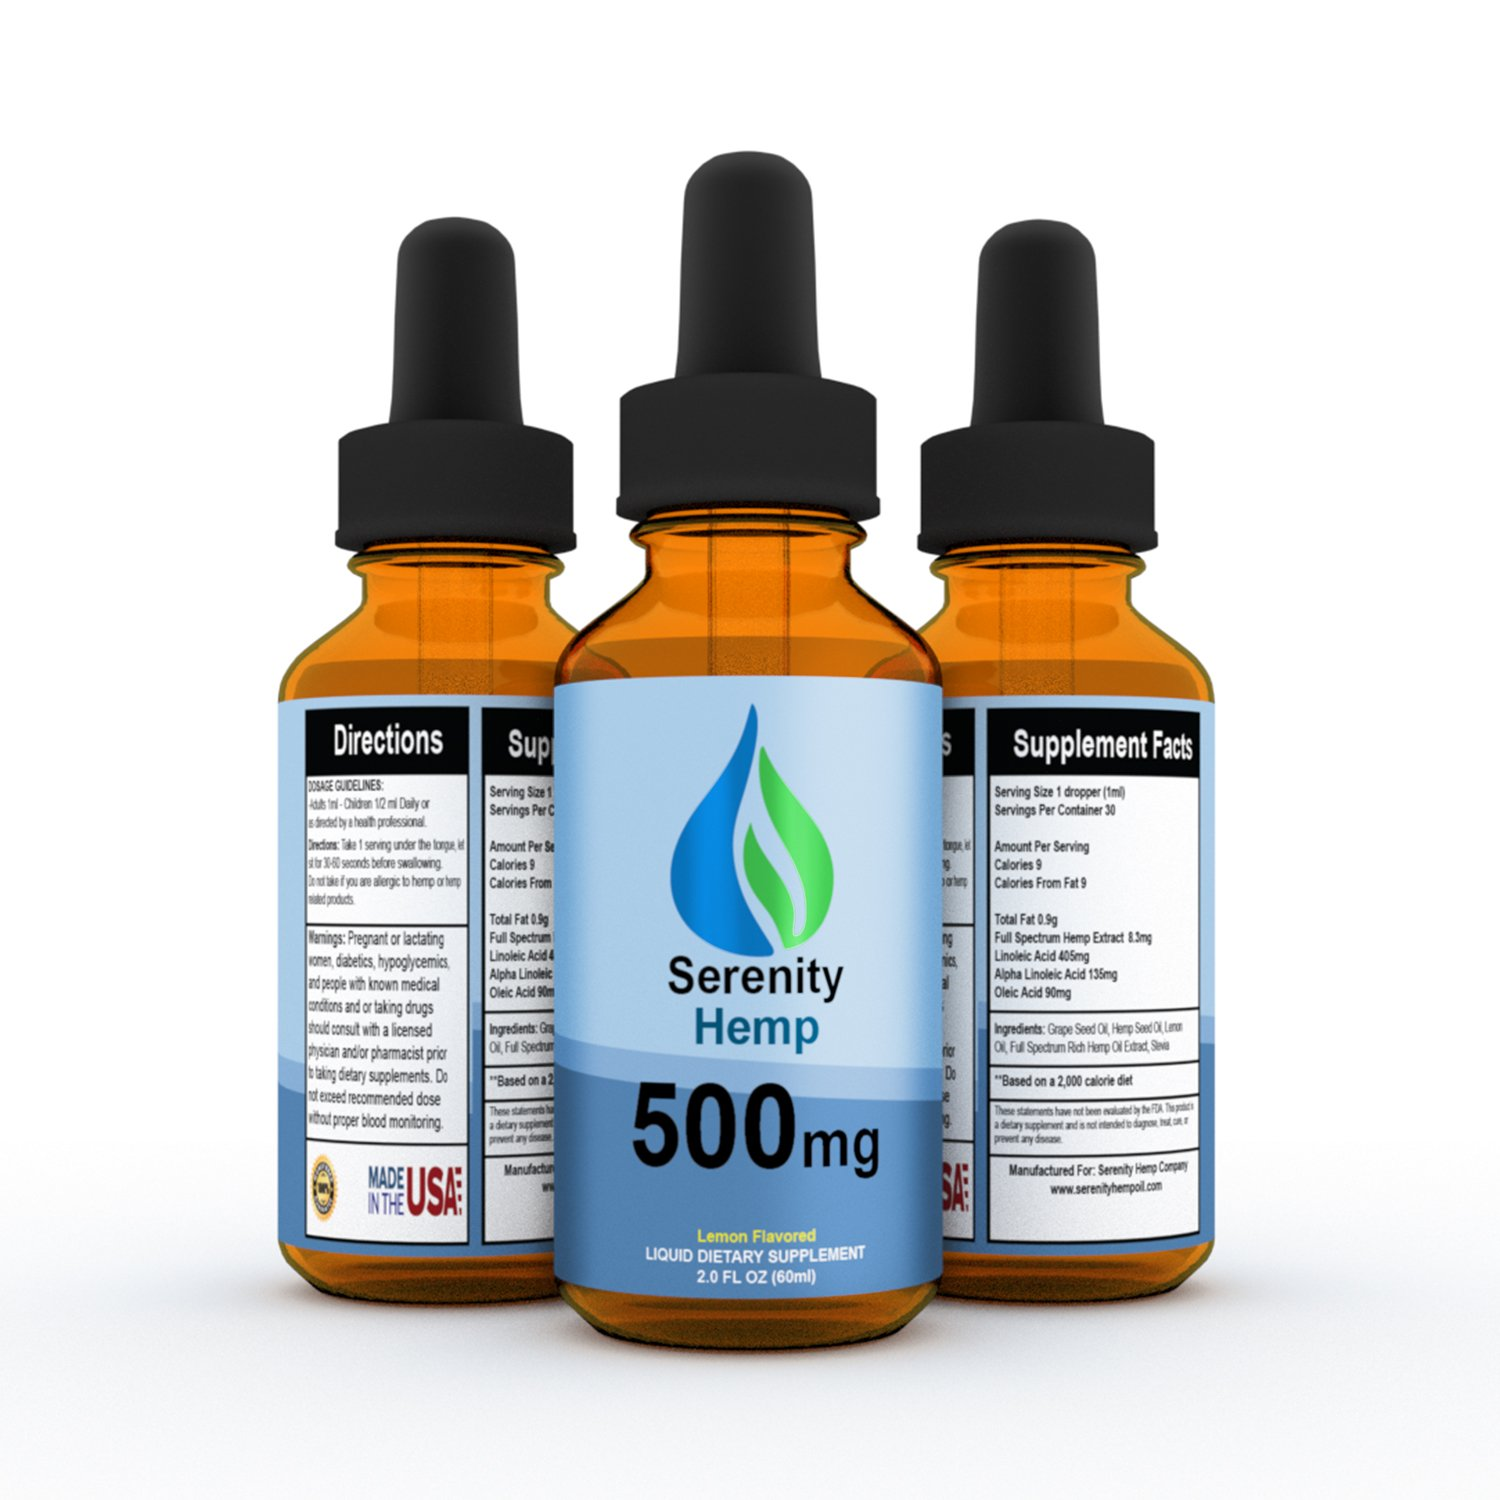 Serenity Hemp Oil - Lemon Flavor - 2 fl oz 500mg - Certified Organic - 99.9% Pure Full Spectrum Hemp Extract - For Pain - Stress - Anxiety